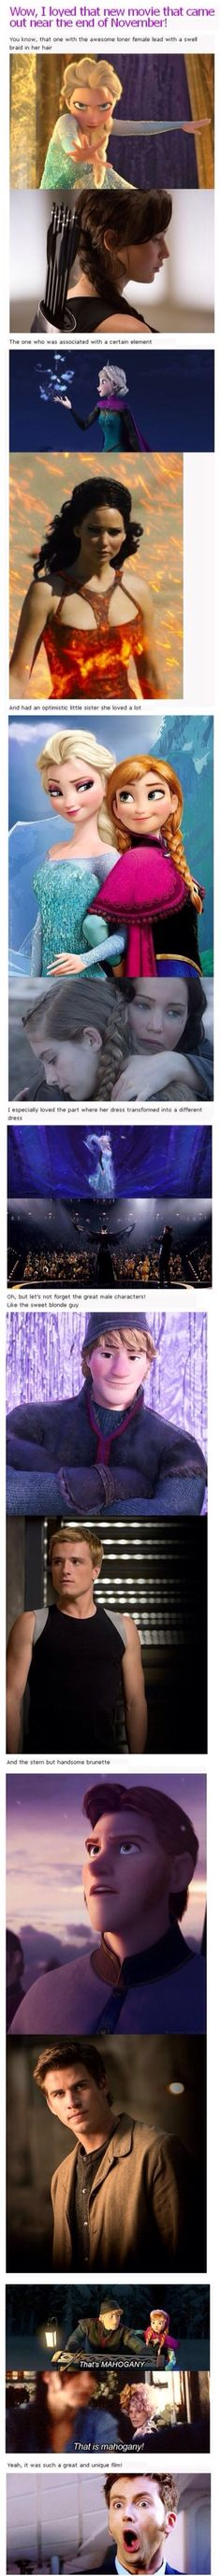 this is amazing how similar hunger games and frozen are